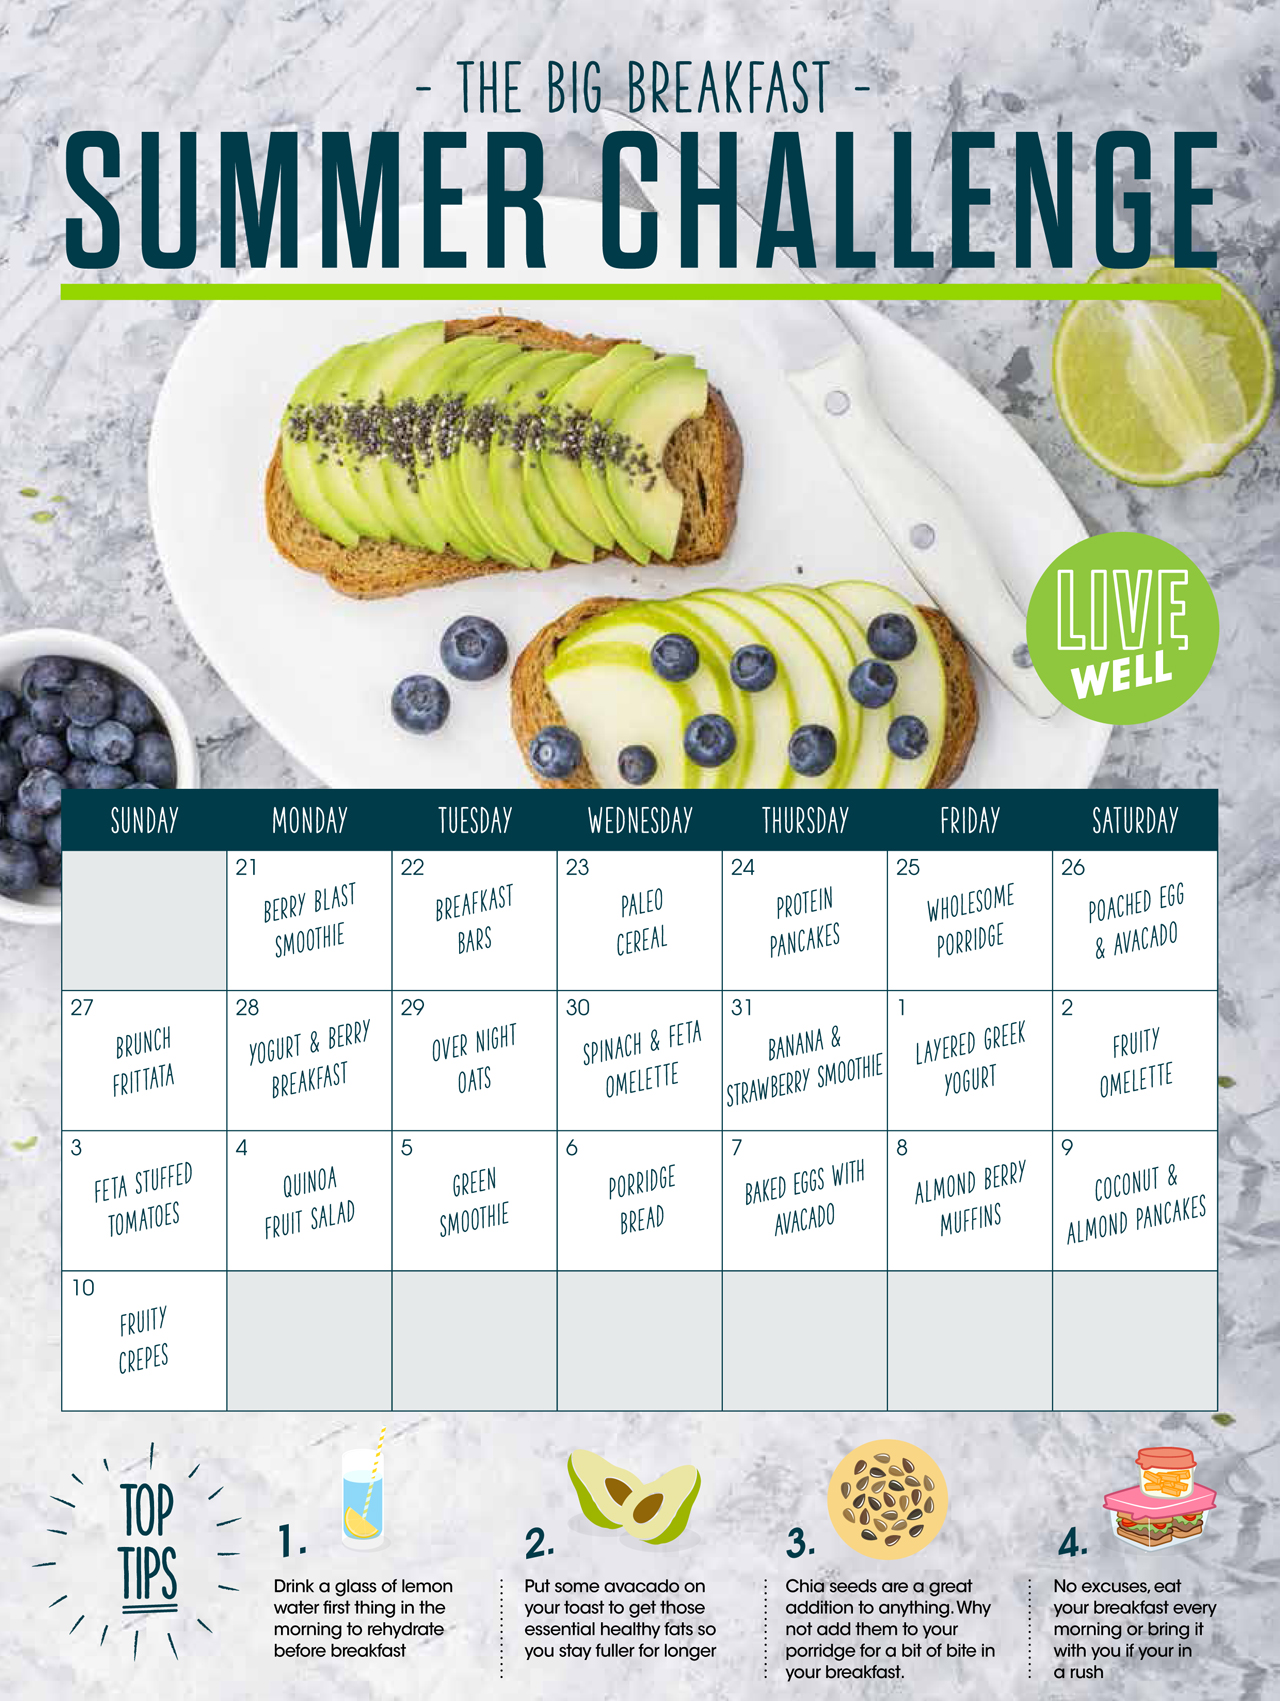 The Big Breakfast Summer Challenge